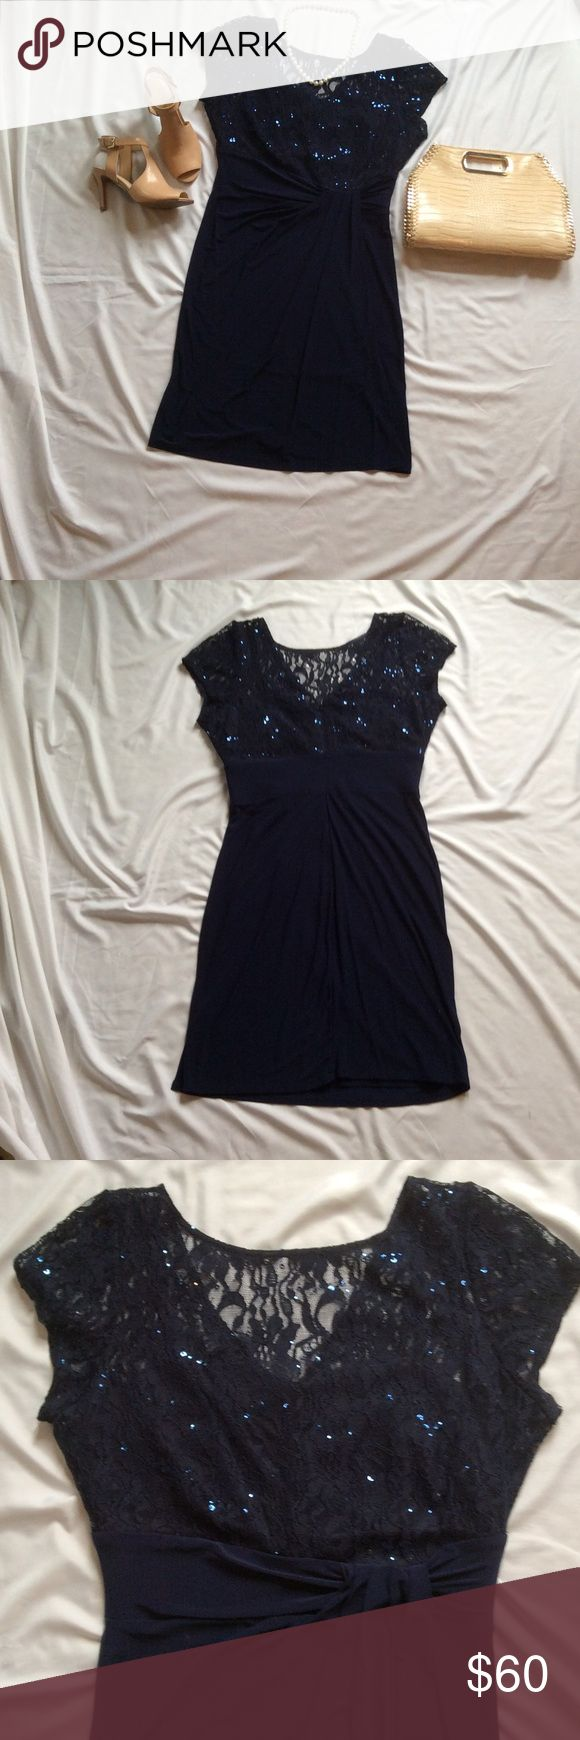 """Gabby Skye Navy sequins and lace Cocktail Dress I wore this dress once to a wedding.  I was newly pregnant.  Maybe worn for 2 or 3 hours tops.  It has a boat neck and cap sleeves with a v-cut in the back.  Zipper runs up the back from bottom of v cut to tail bone.  This dress is fully lined with a little slip sewn in that runs the full length of the dress.  Measurements laying flat: Bust 21"""", sleeve opening 7"""", Waist 16"""", length shoulder to hem 40"""".  Material is very stretchy (so flattering…"""